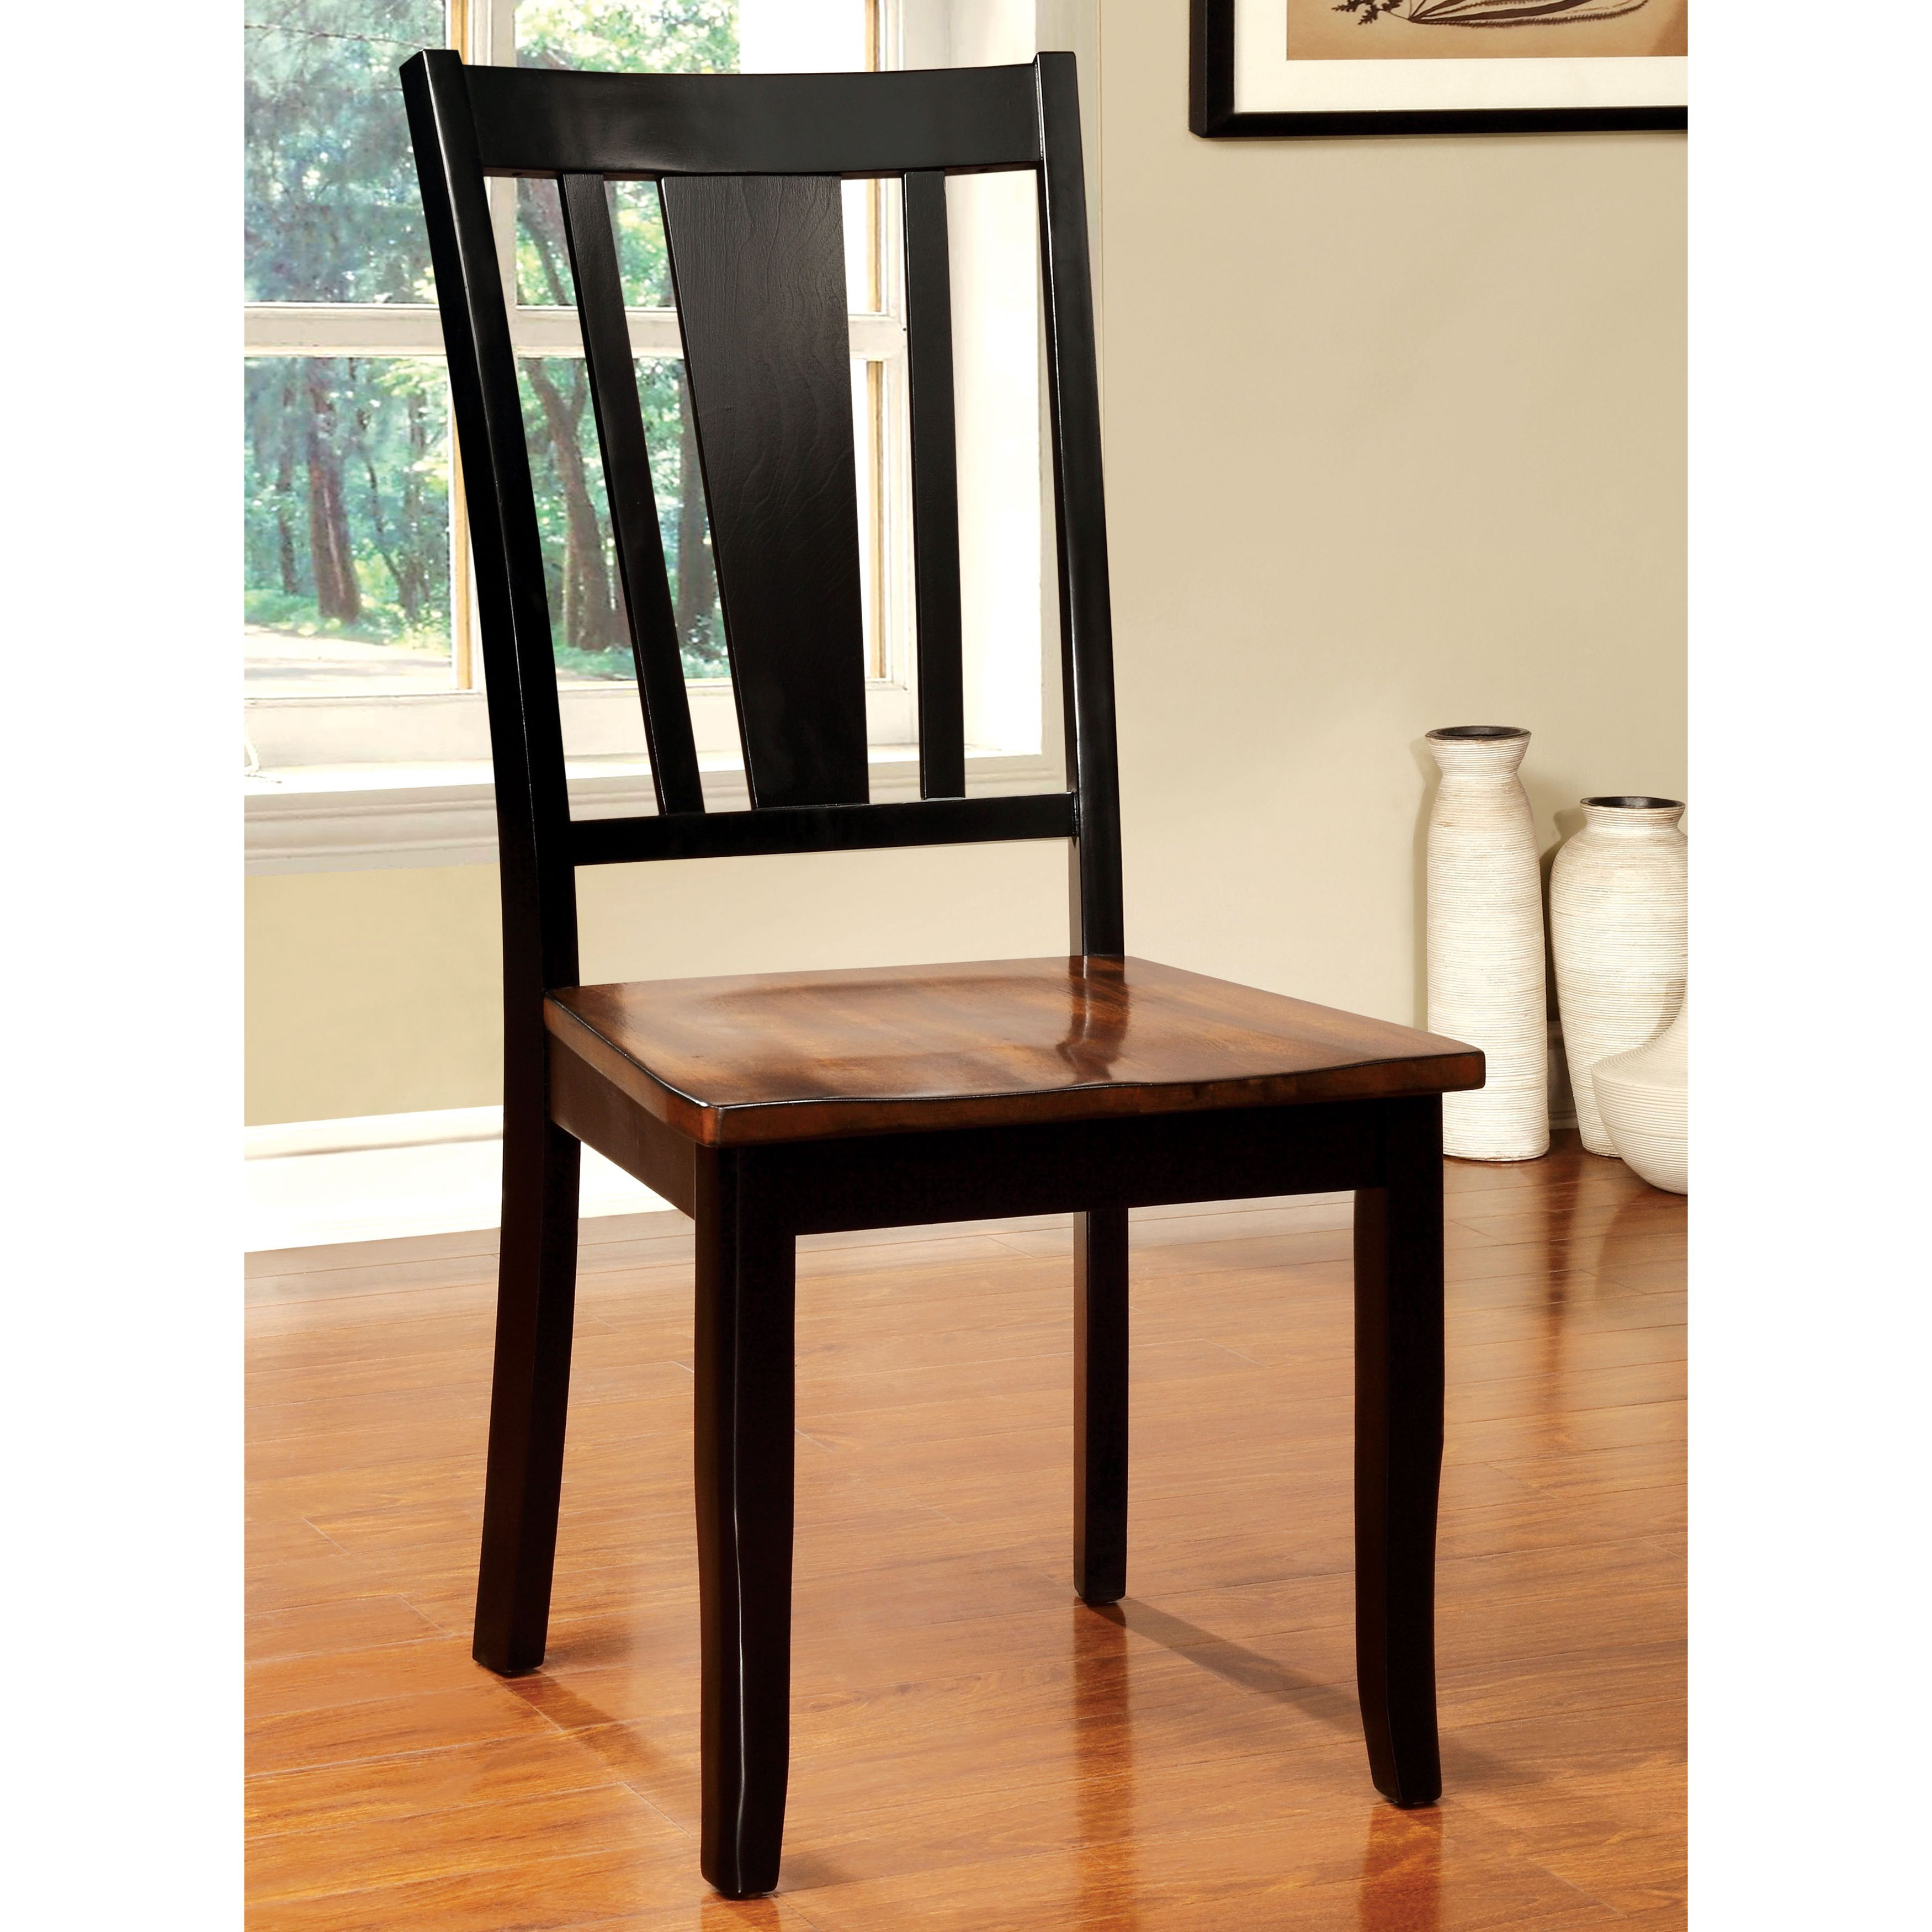 Furniture of America Betsy Jane Country Style